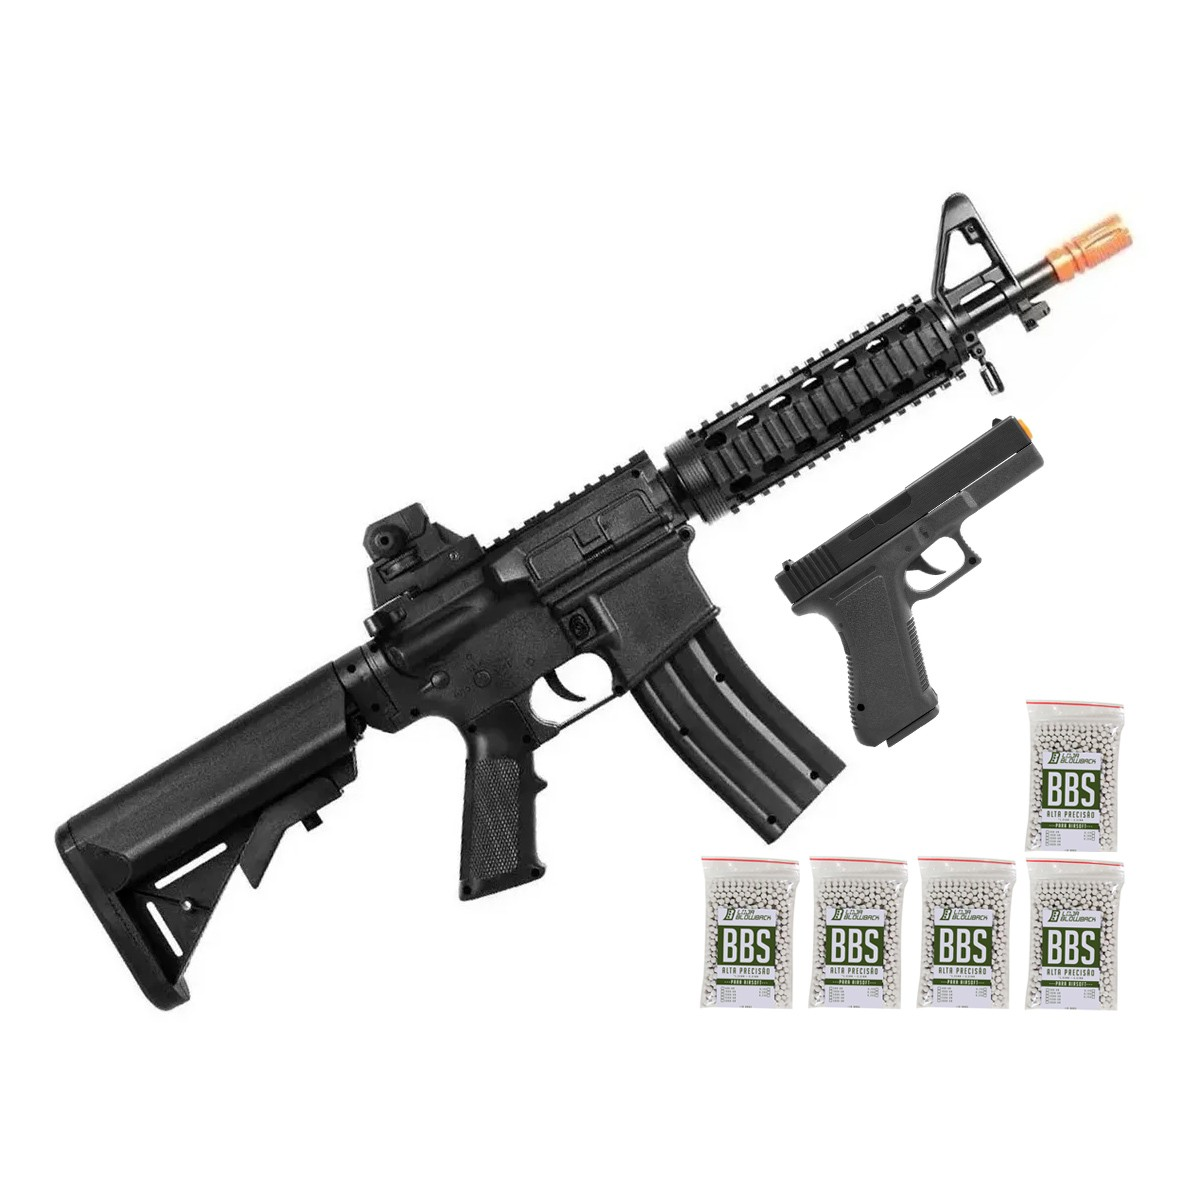 Airsoft Kit Pistola E Rifle M4a1 E Glock V307 Mola 6mm Kit 5